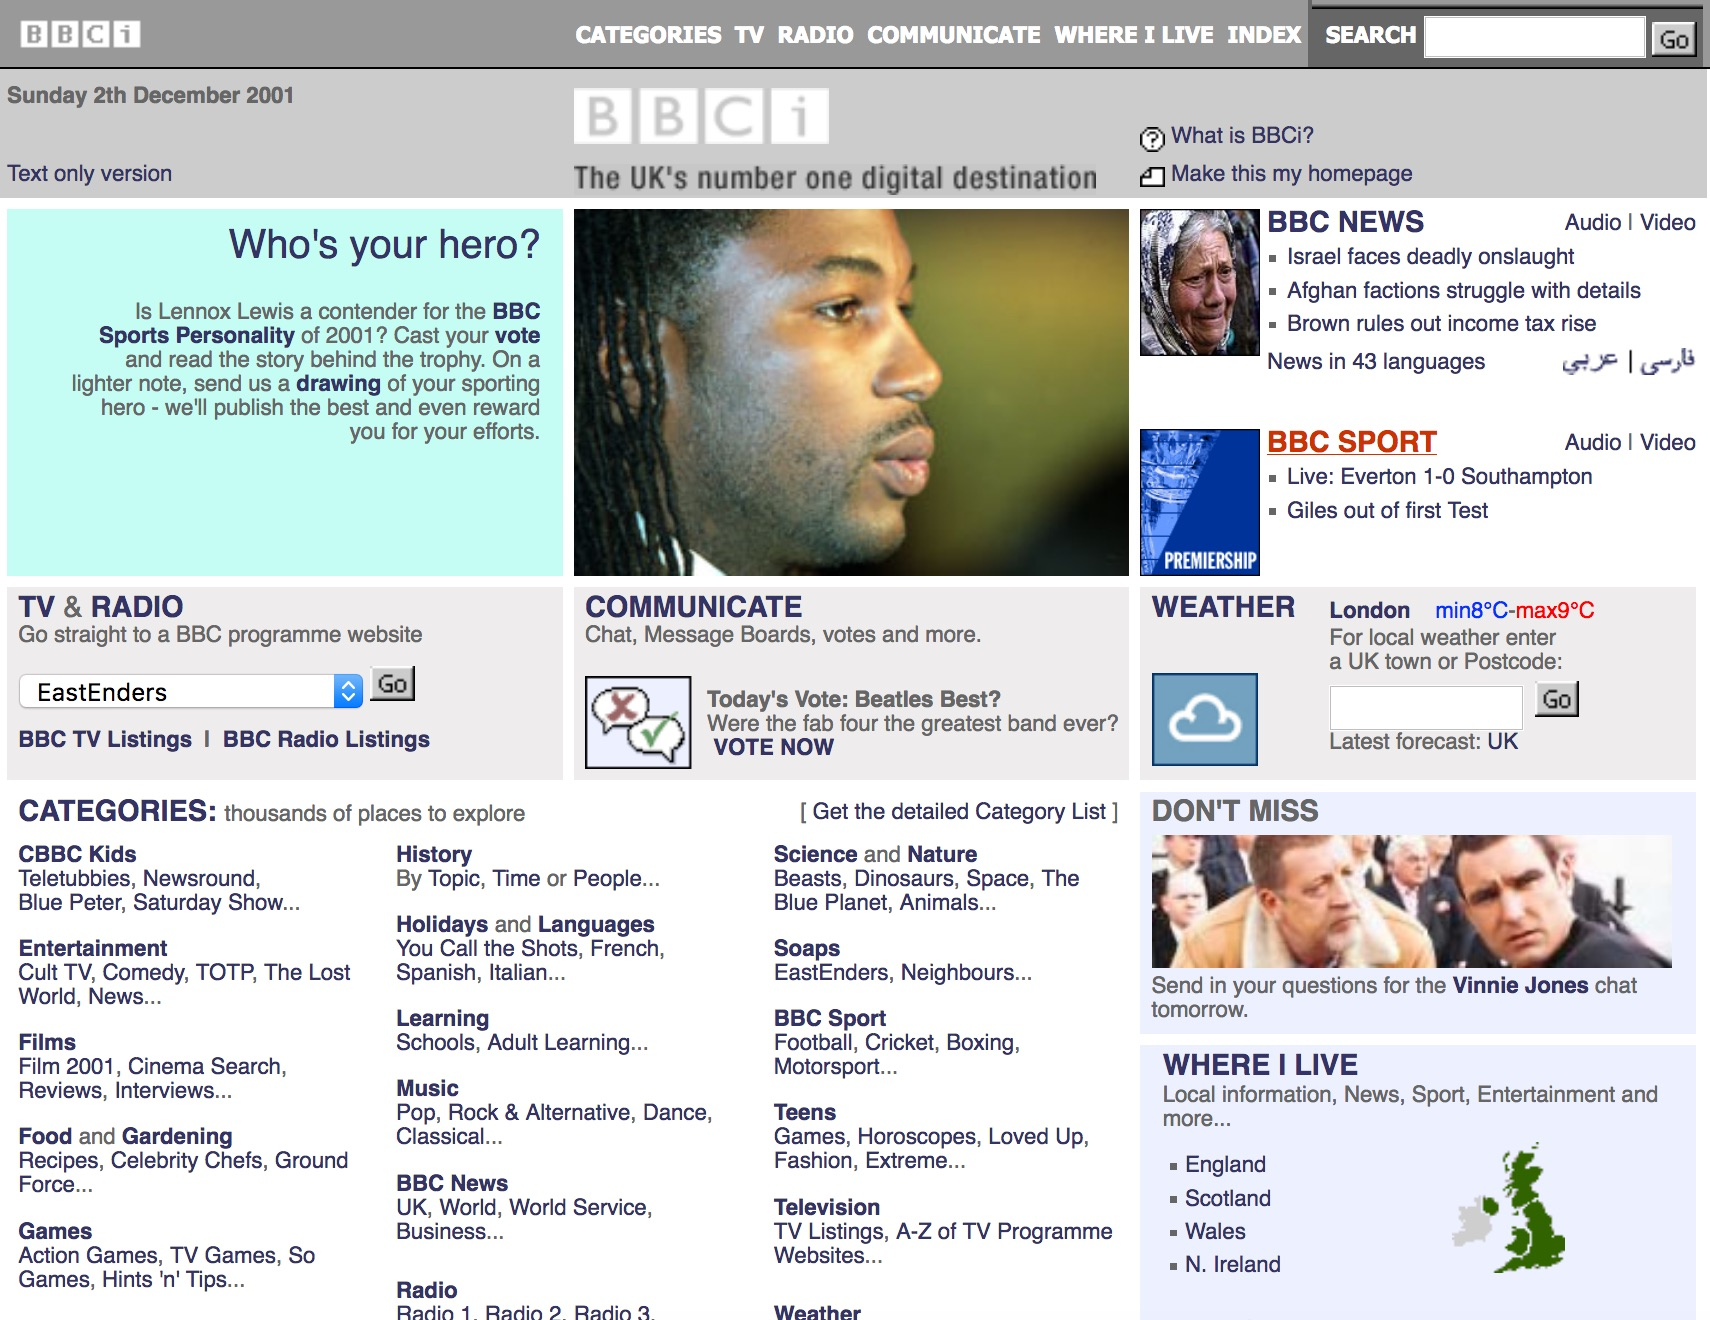 BBC.co.uk homepage (2001)